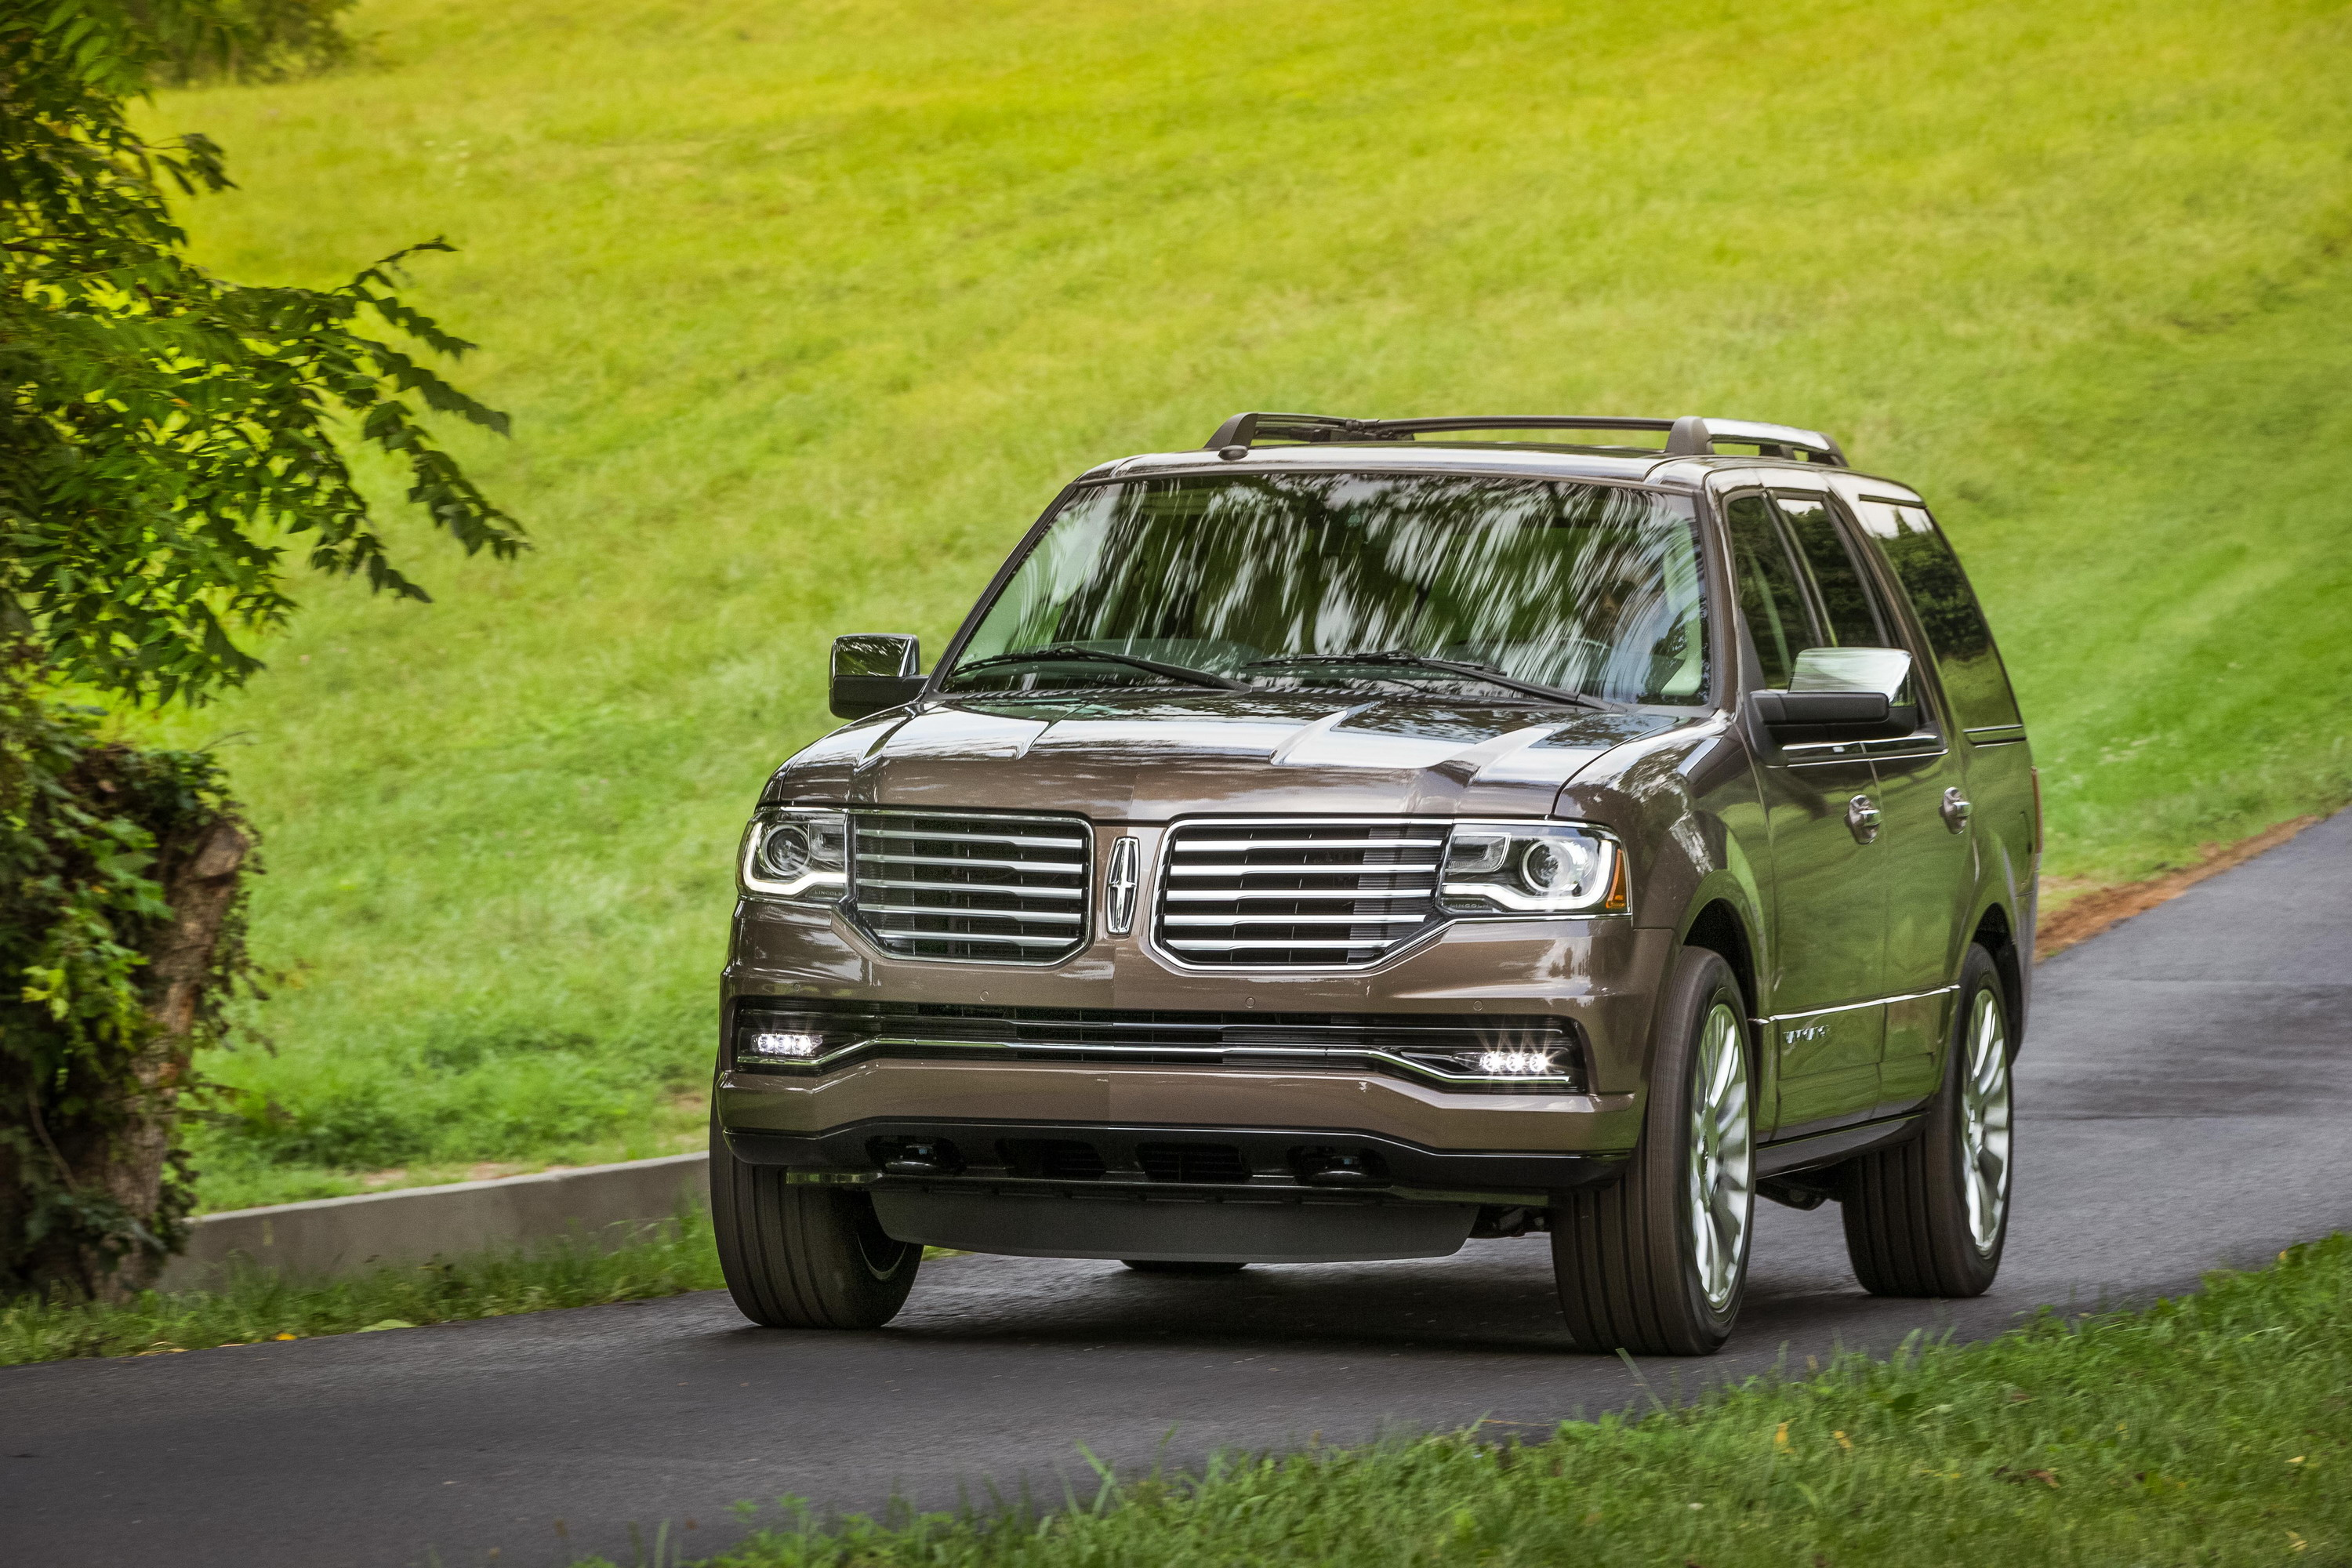 2015 lincoln navigator driven review gallery 628244 top speed. Black Bedroom Furniture Sets. Home Design Ideas